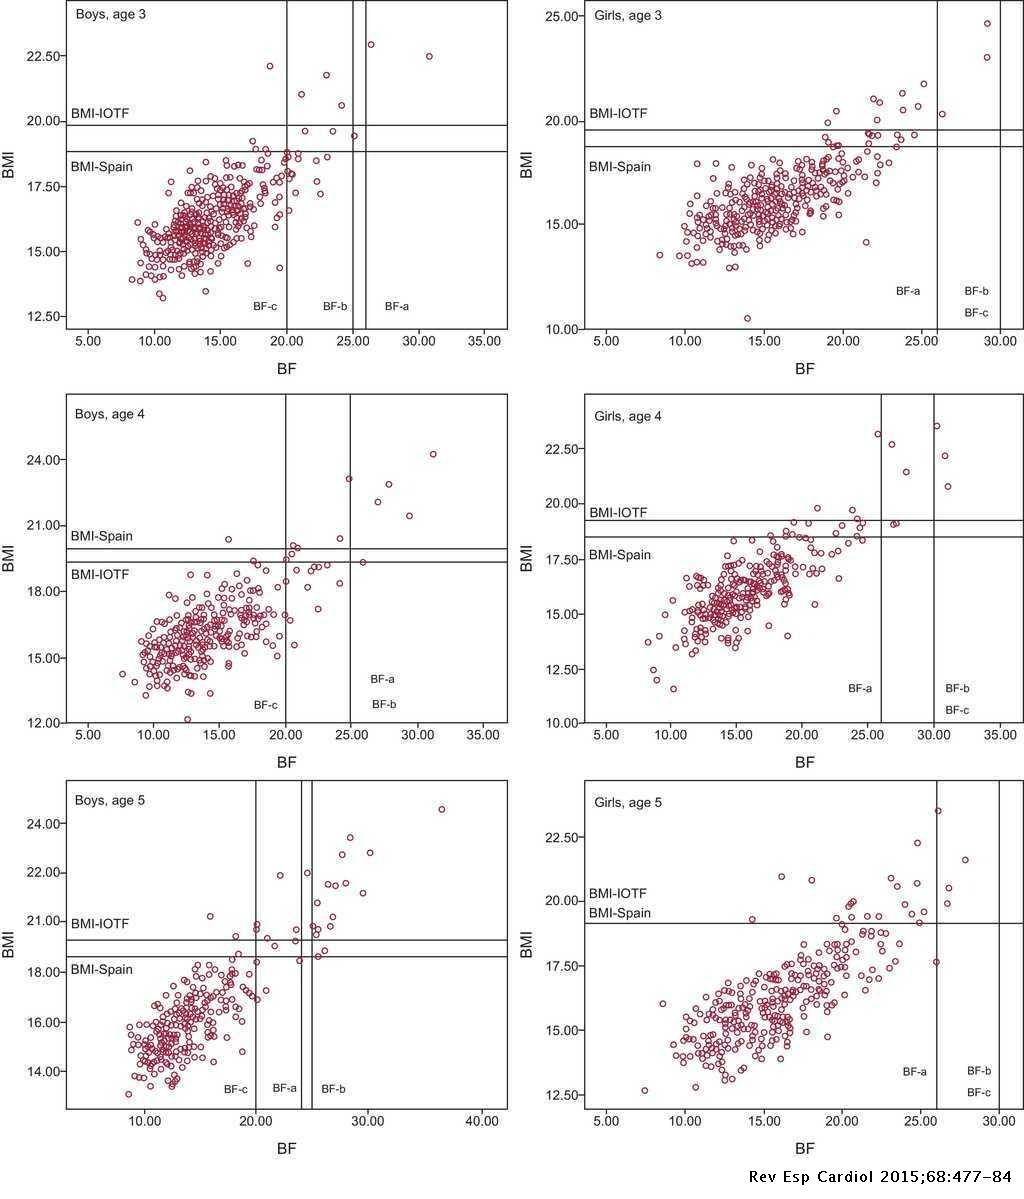 Association Between Anthropometry and High Blood Pressure in